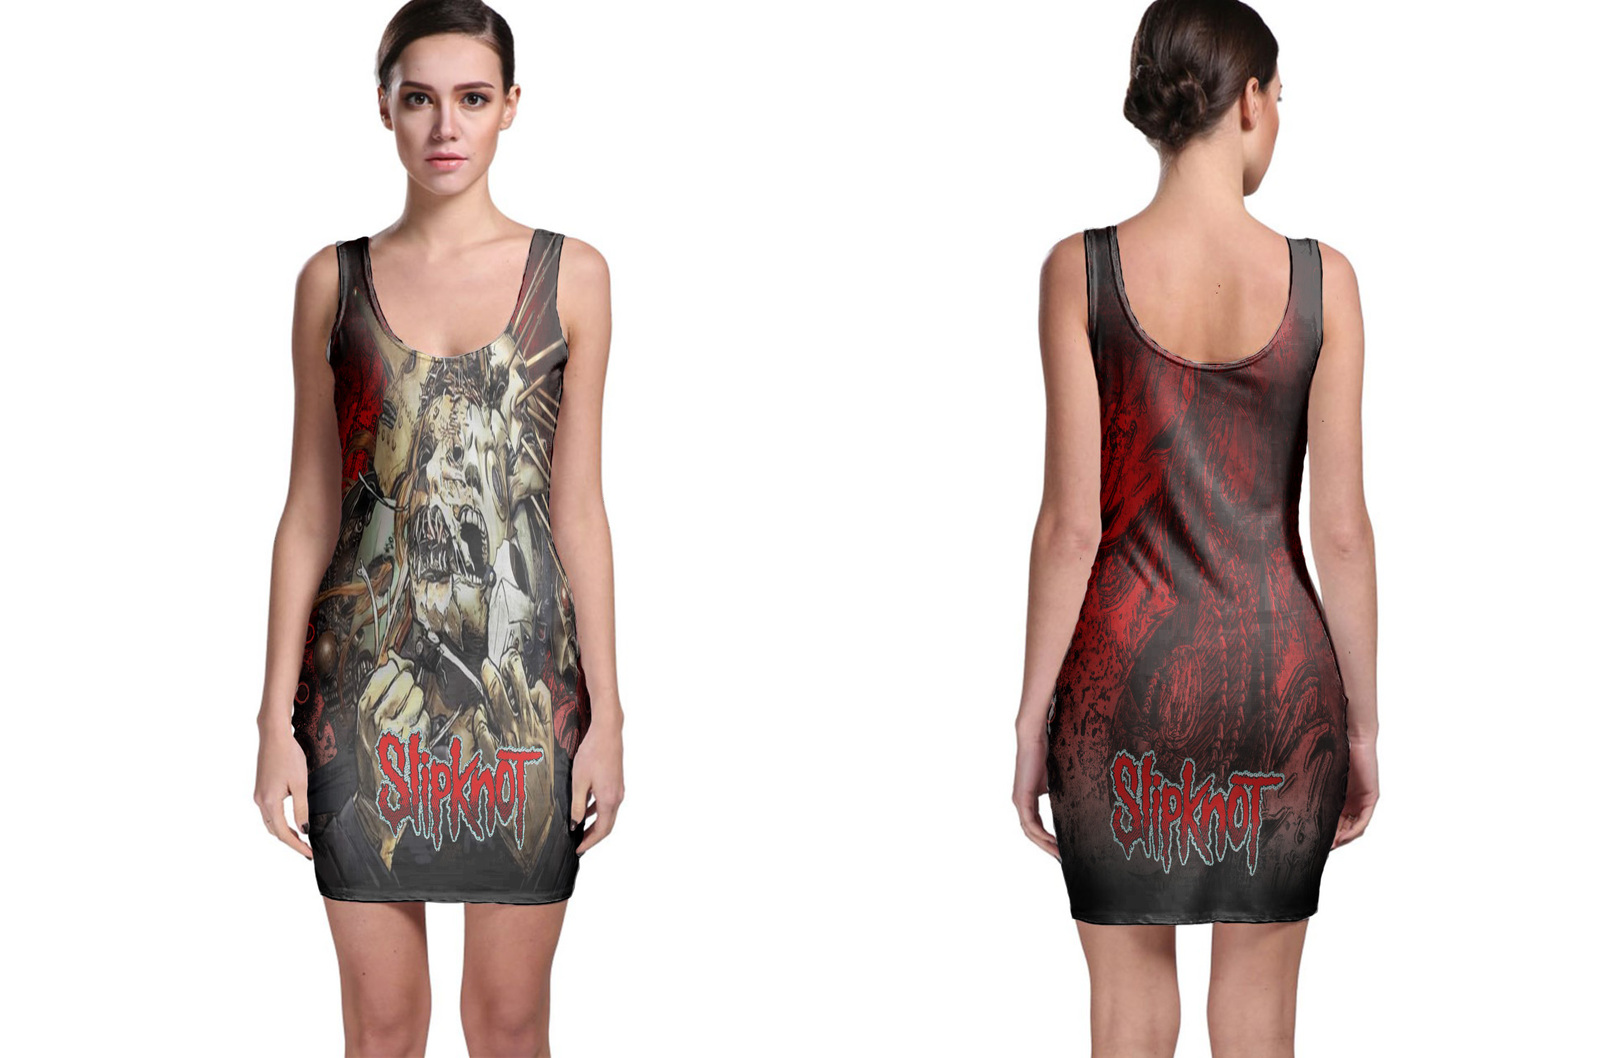 Primary image for Slipknot Bodycon Dress